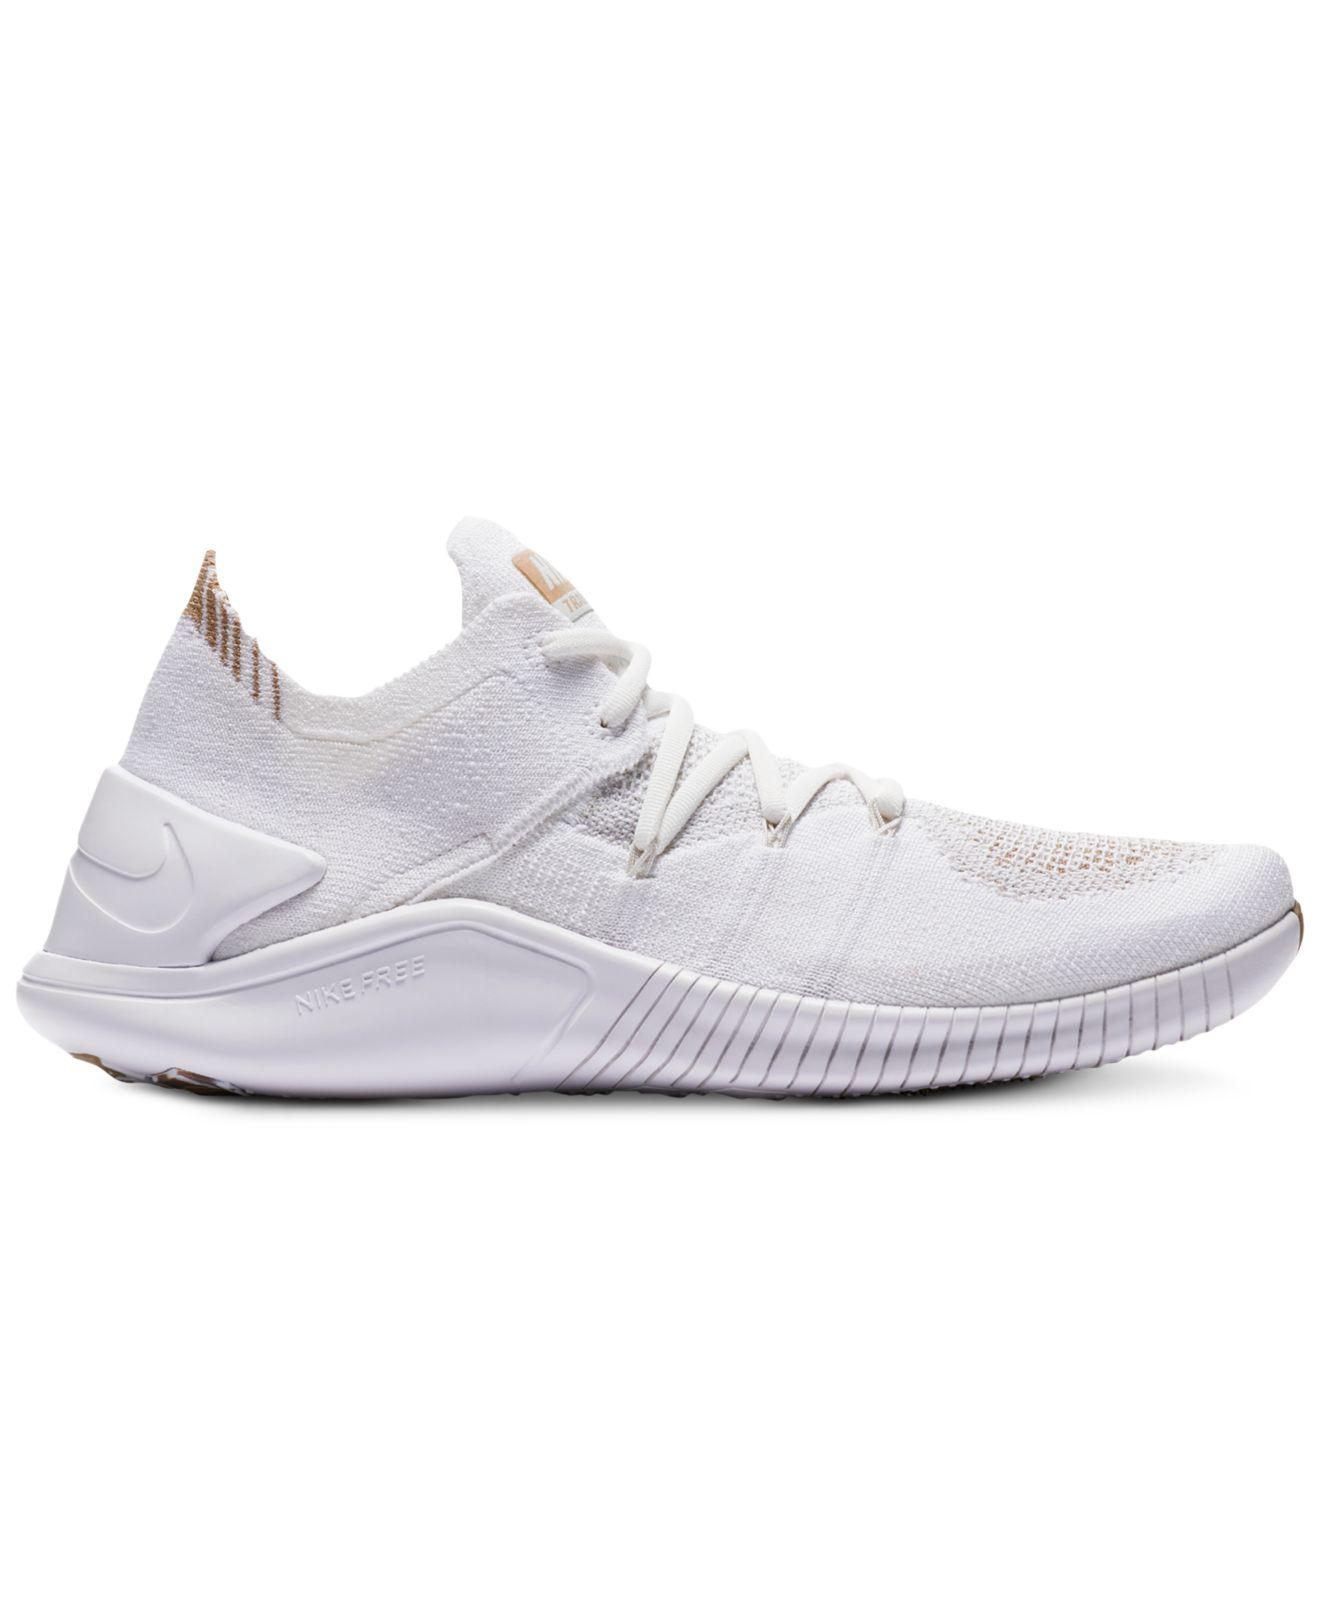 5e4038465e44 Lyst - Nike Free Tr Flyknit 3 Amp Training Sneakers From Finish Line ...